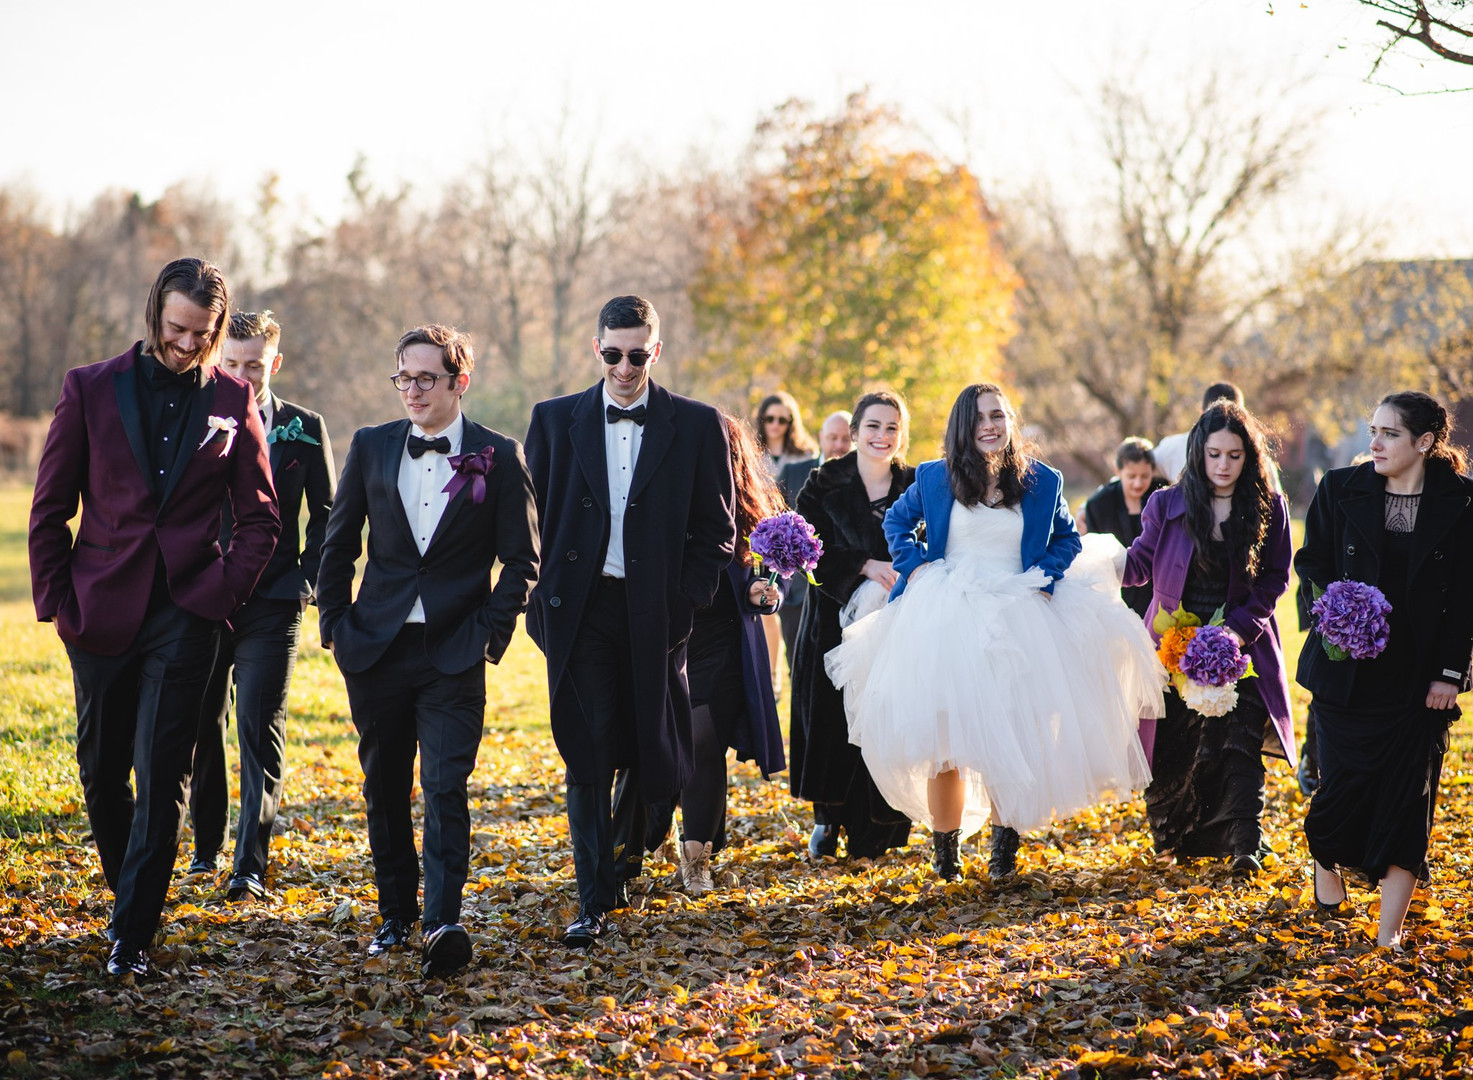 wedding party walking in a field - ct wedding photography